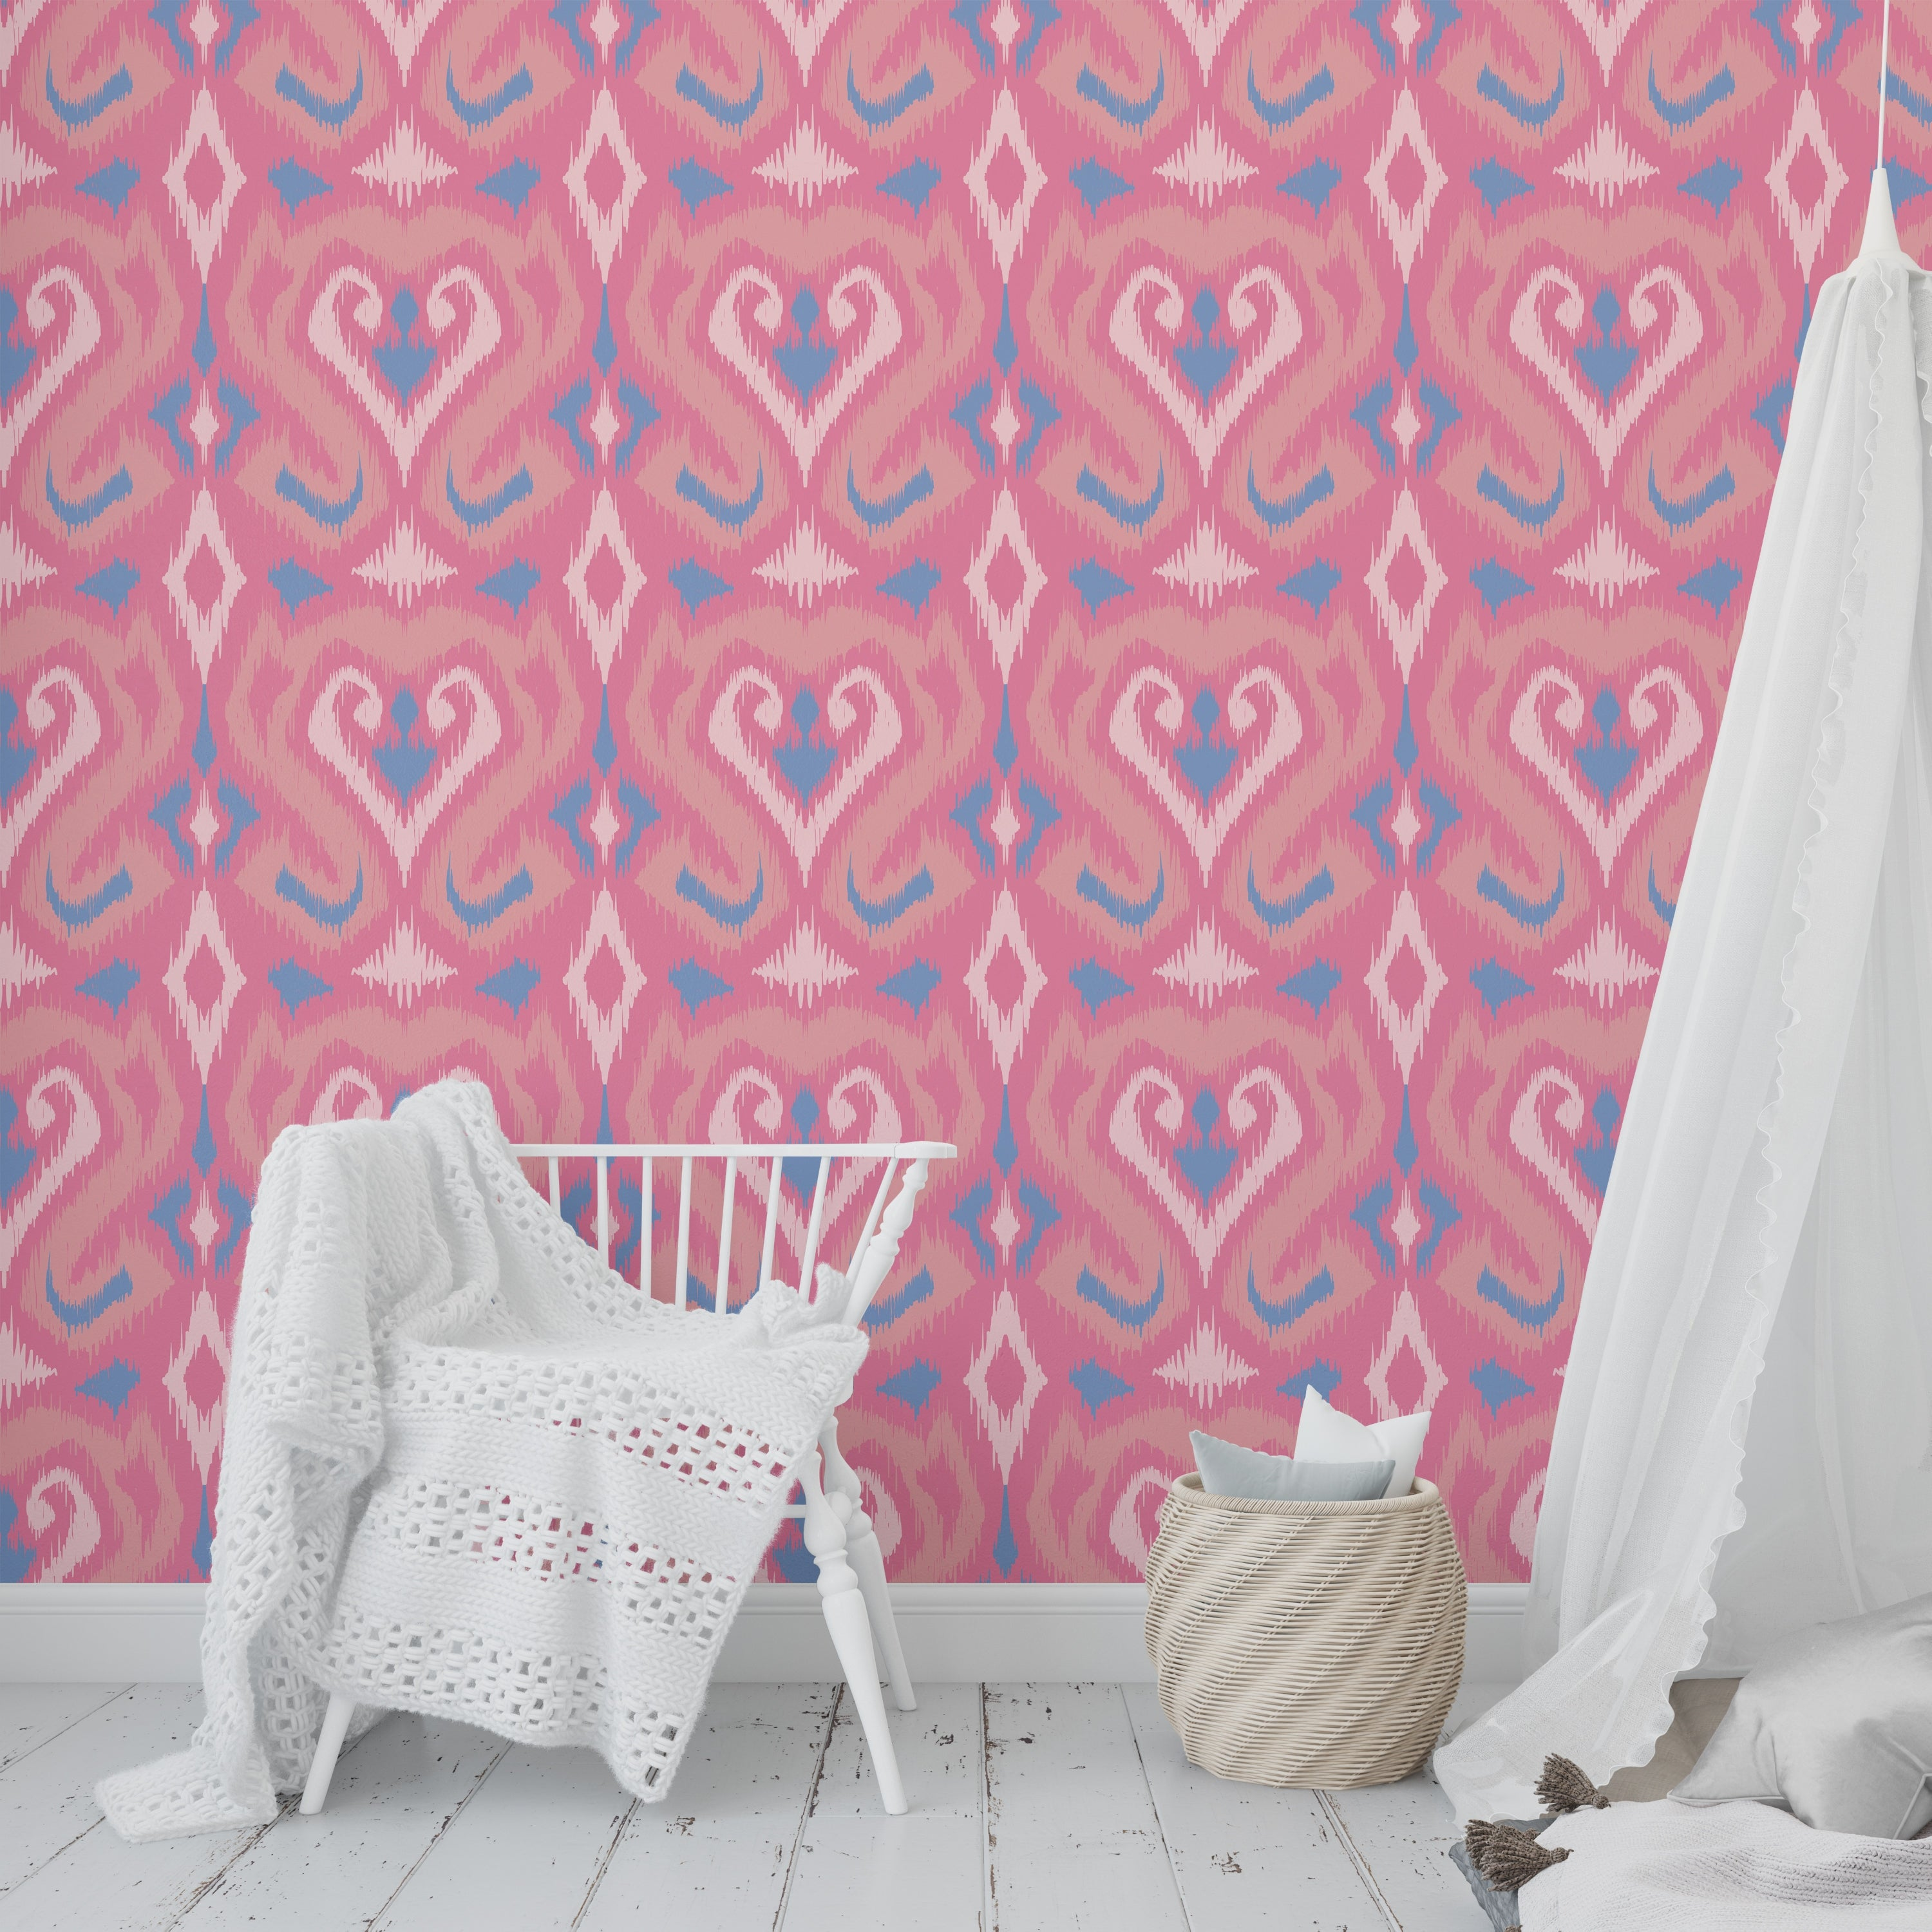 Shop Cupcake Dark Pink And Blue Peel And Stick Wallpaper By Kavka Designs 2 X 16 Overstock 31638230